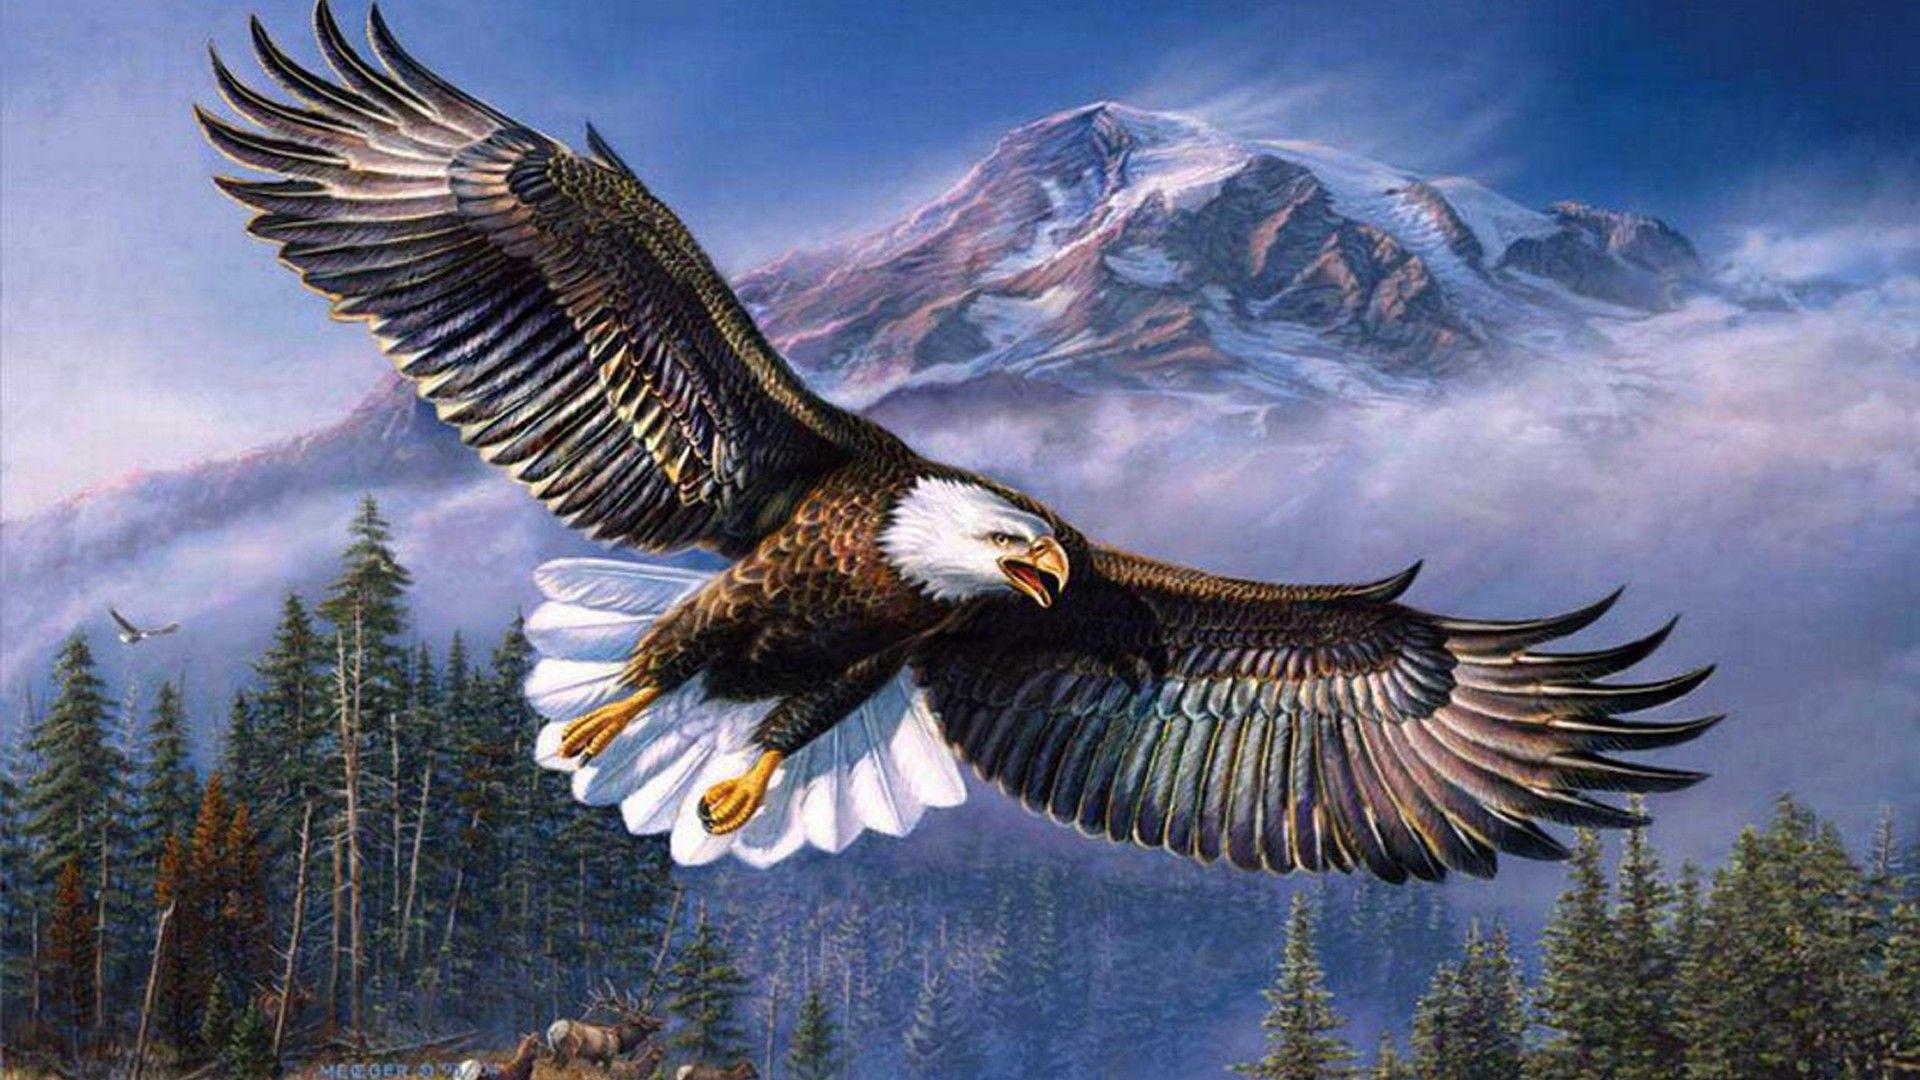 The Picture Eagle Over The Mountains